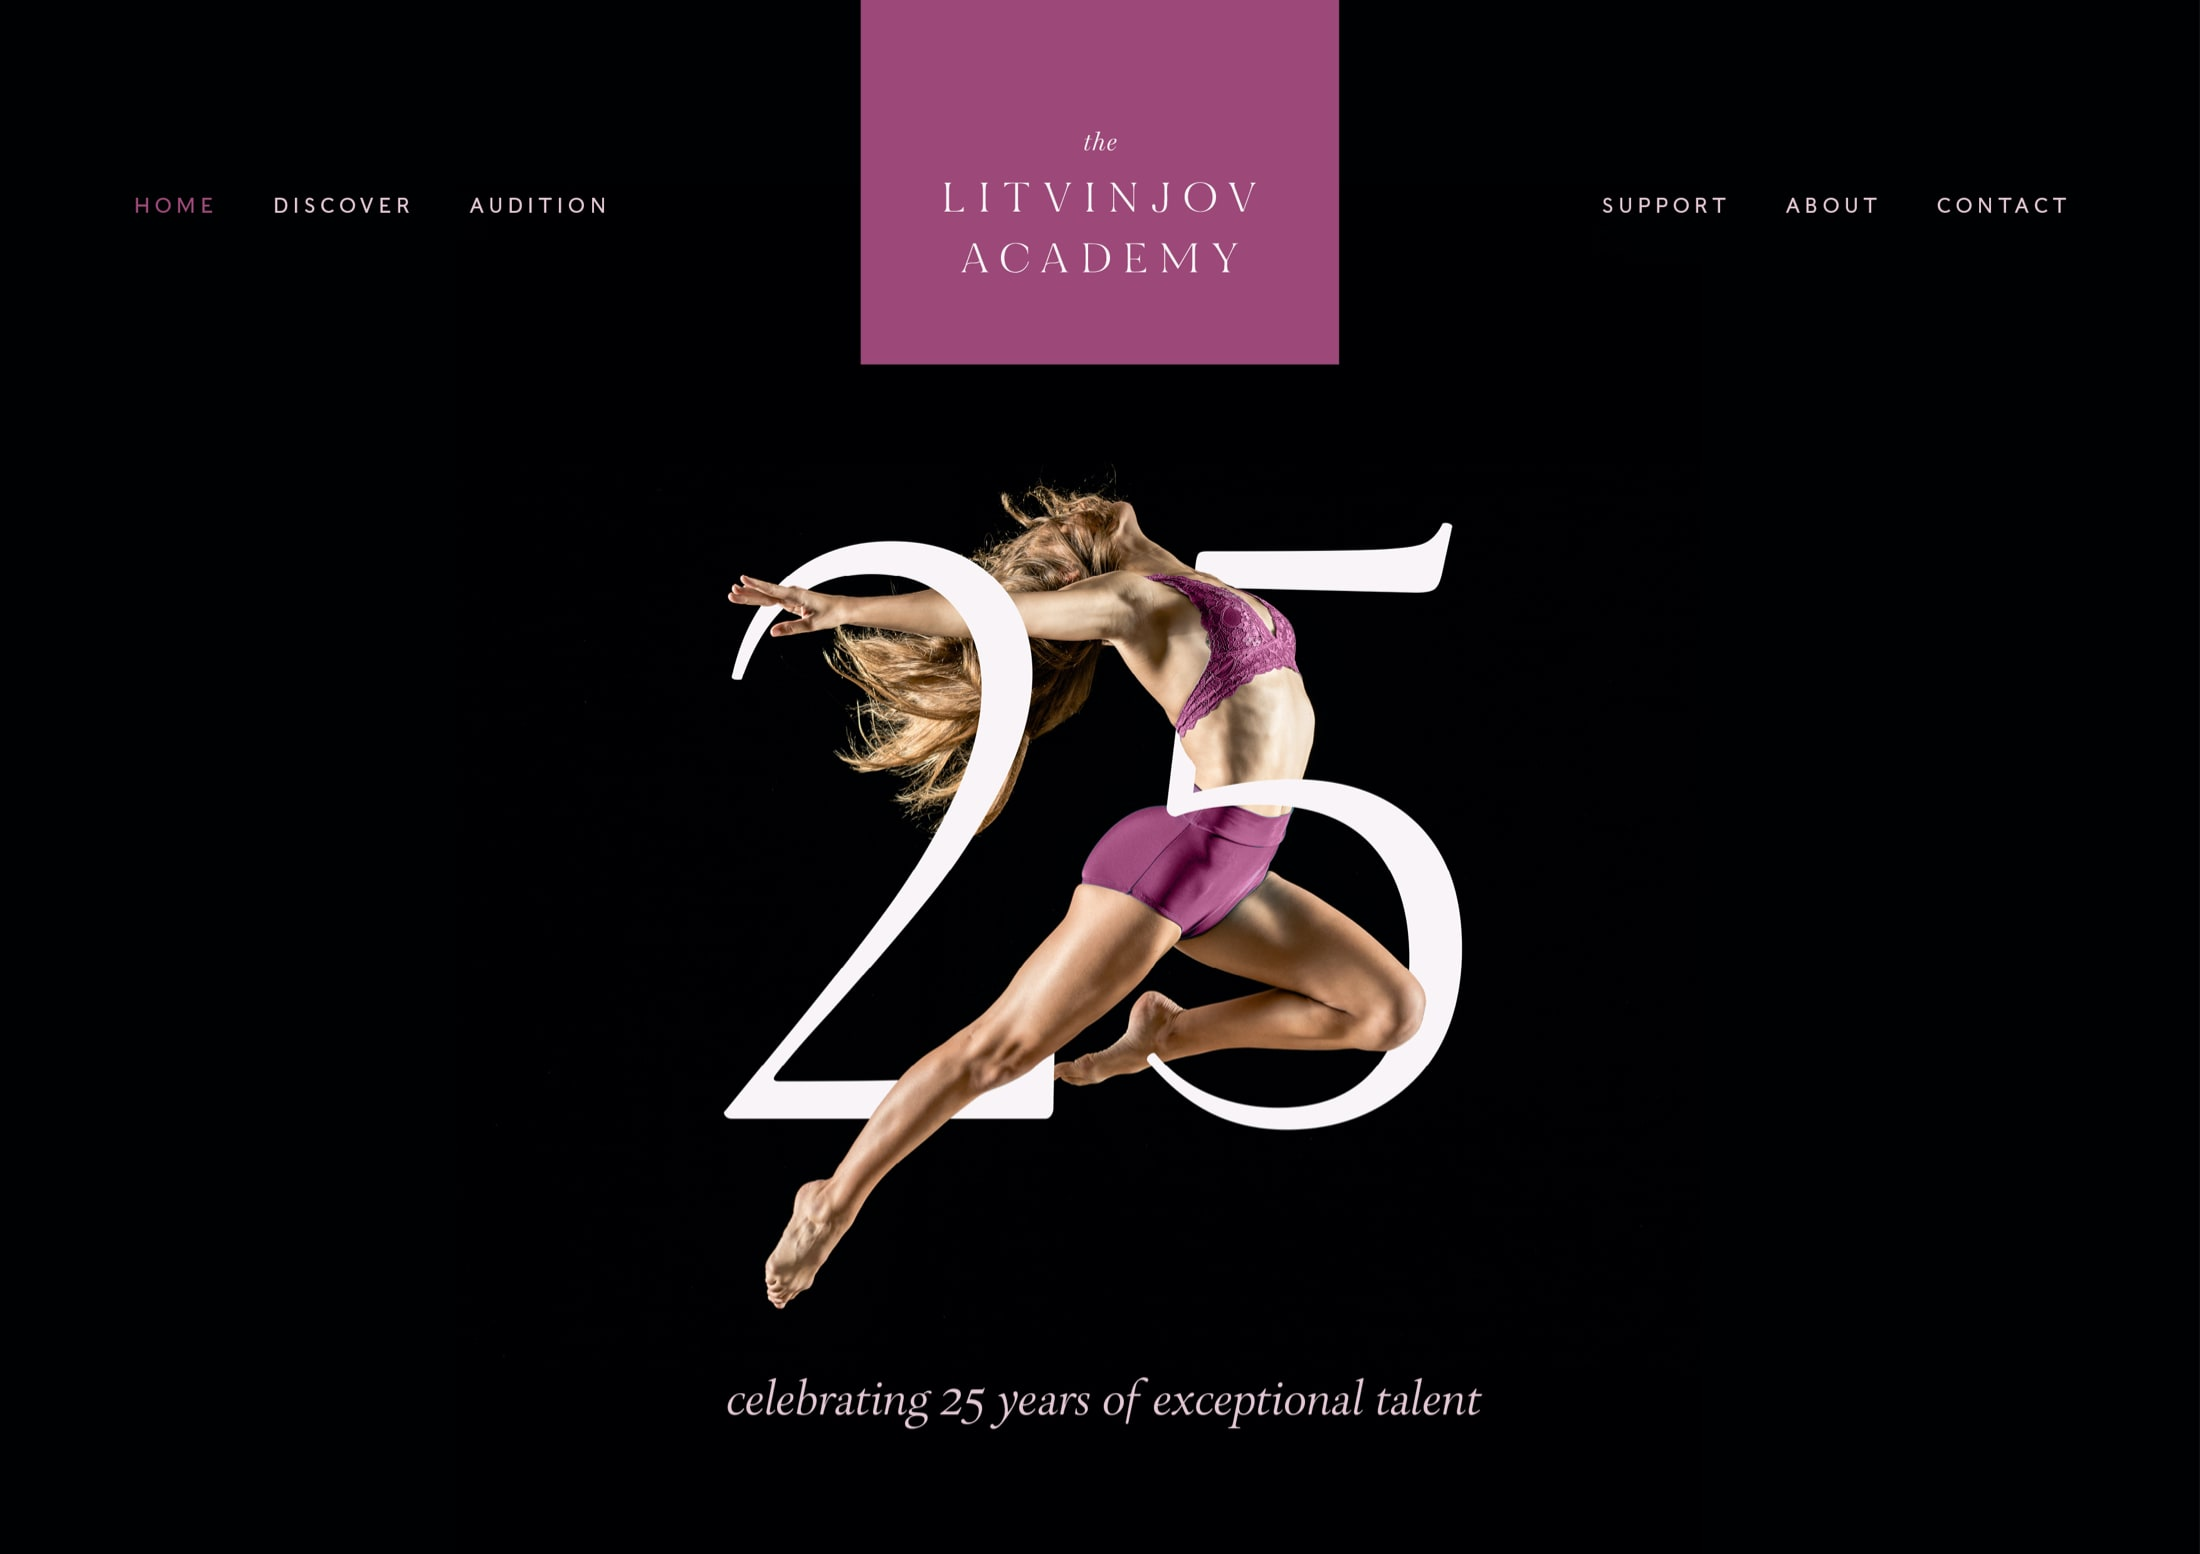 Prestigious website design for ballet and contemporary dance school, The Litvinjov Academy